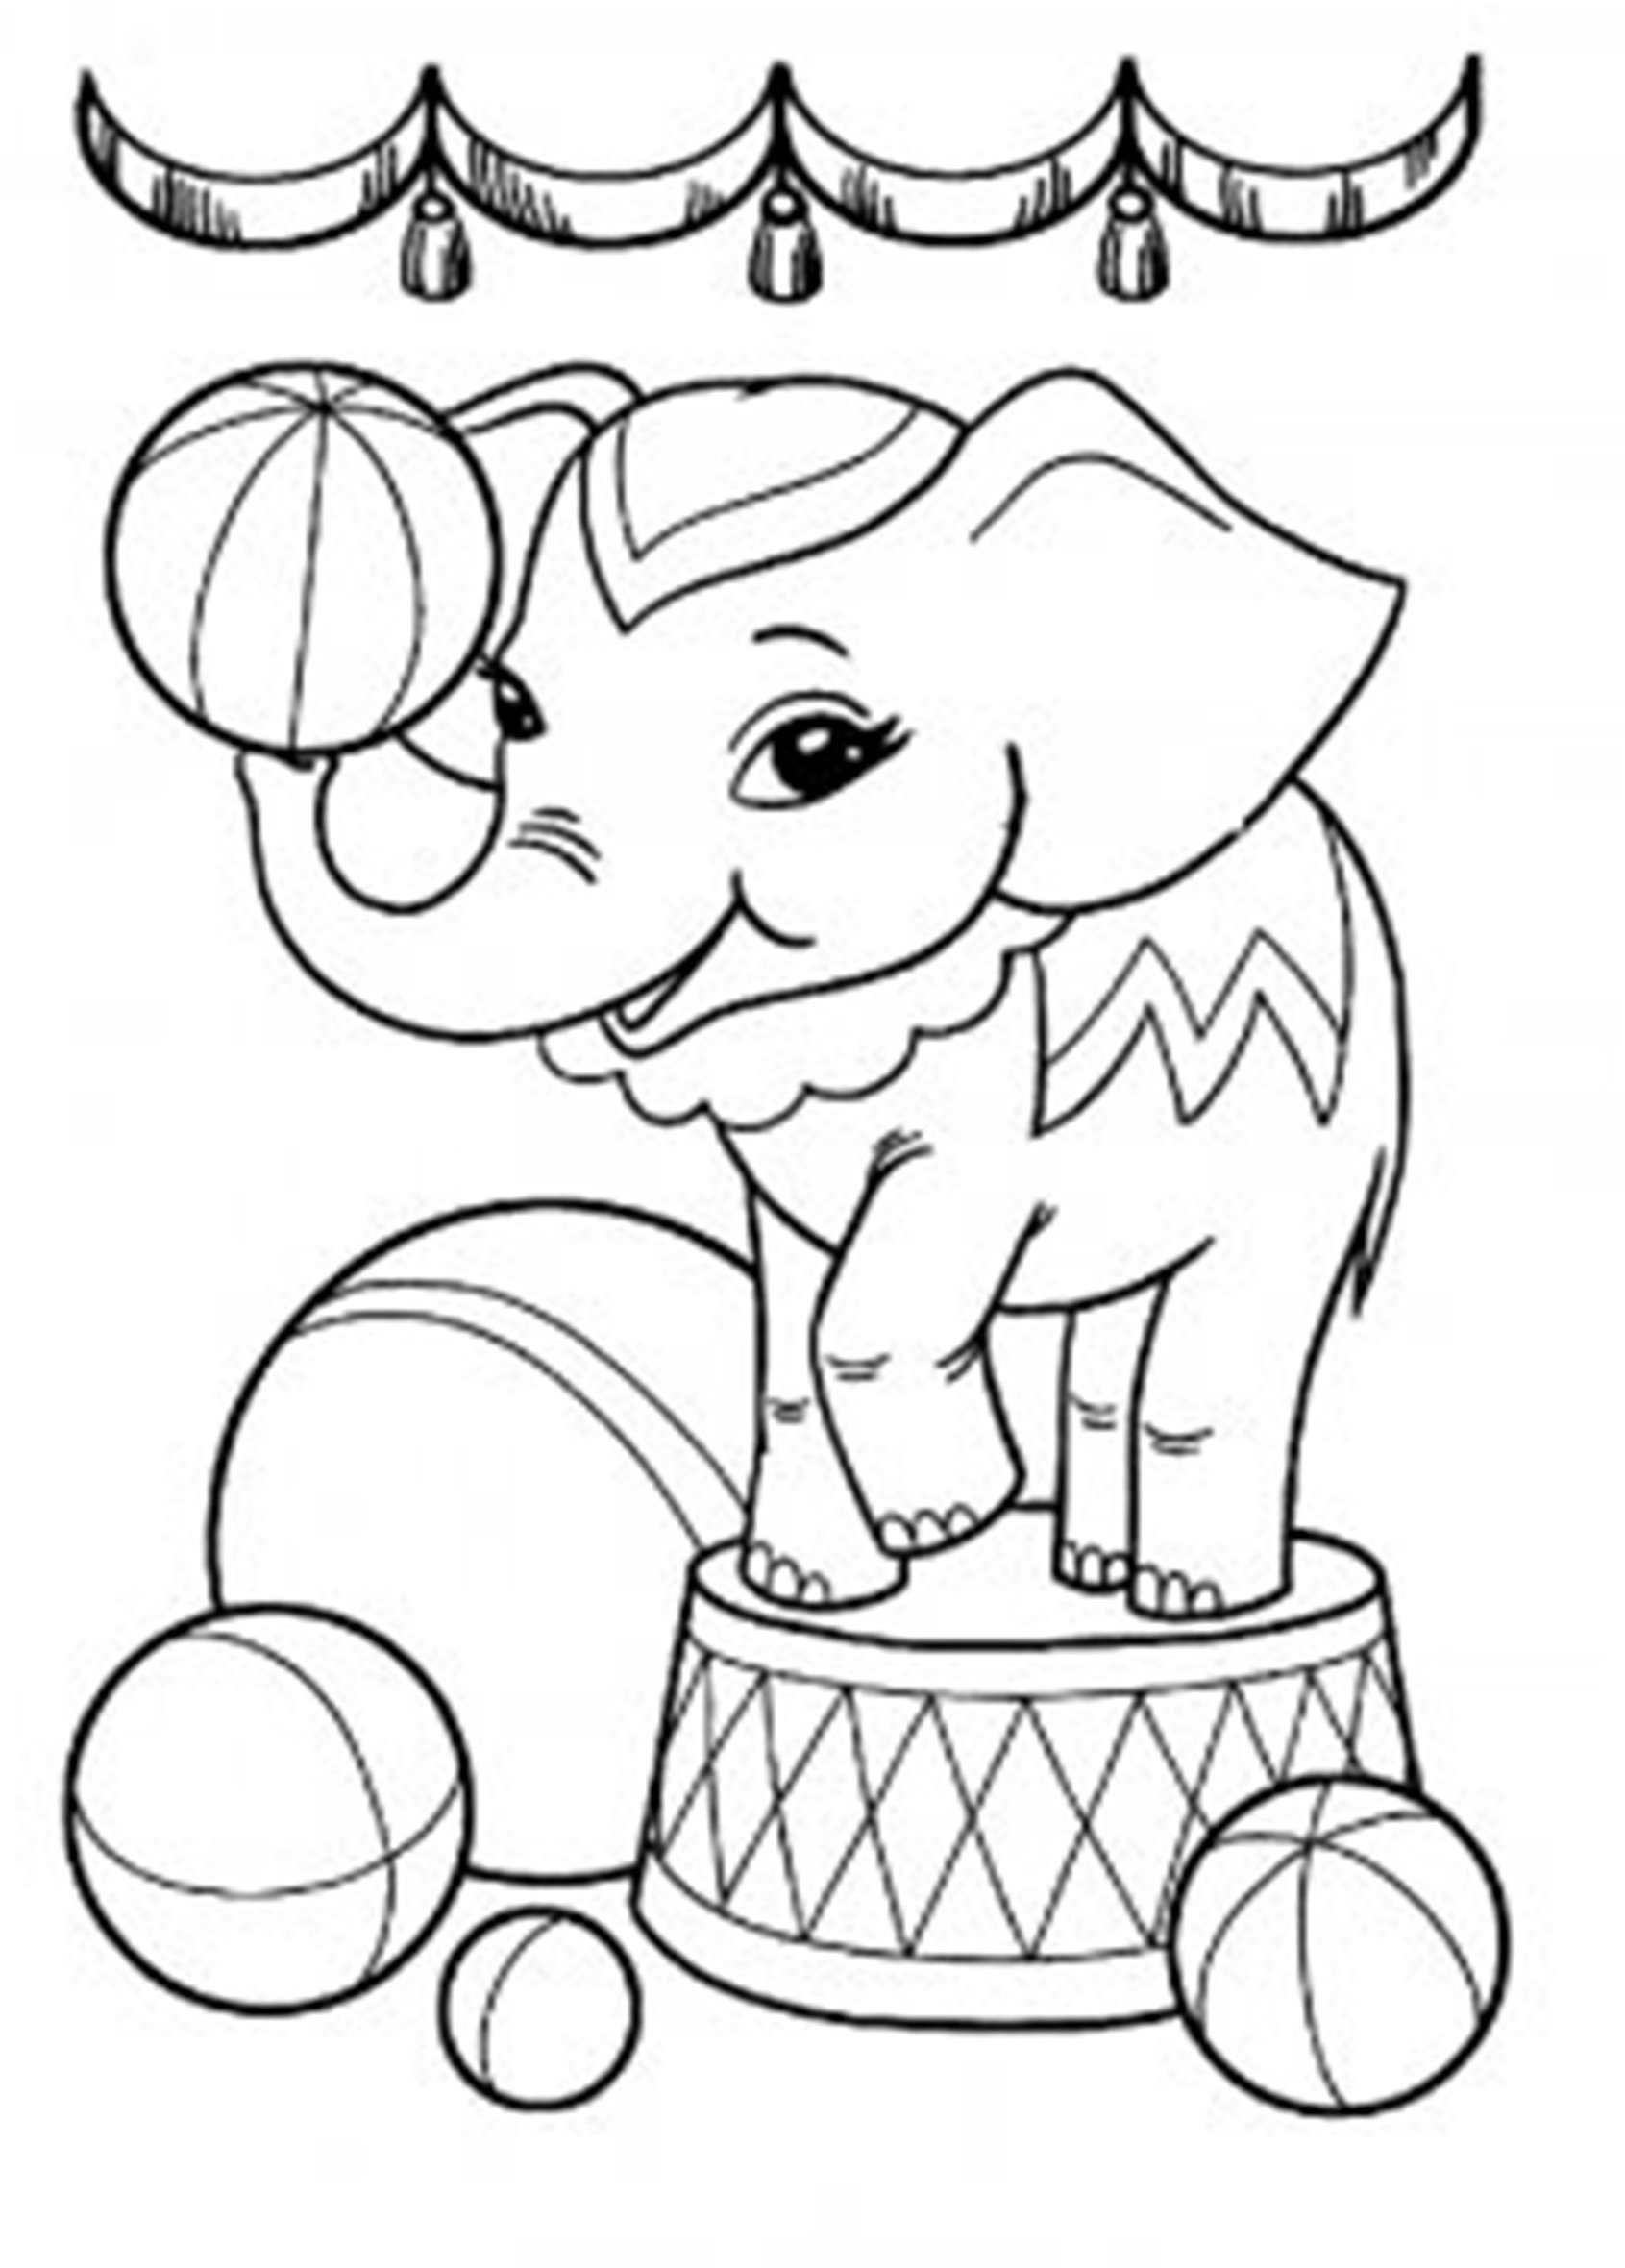 Elephant coloring pages for kids printable for free for Elephant coloring pages